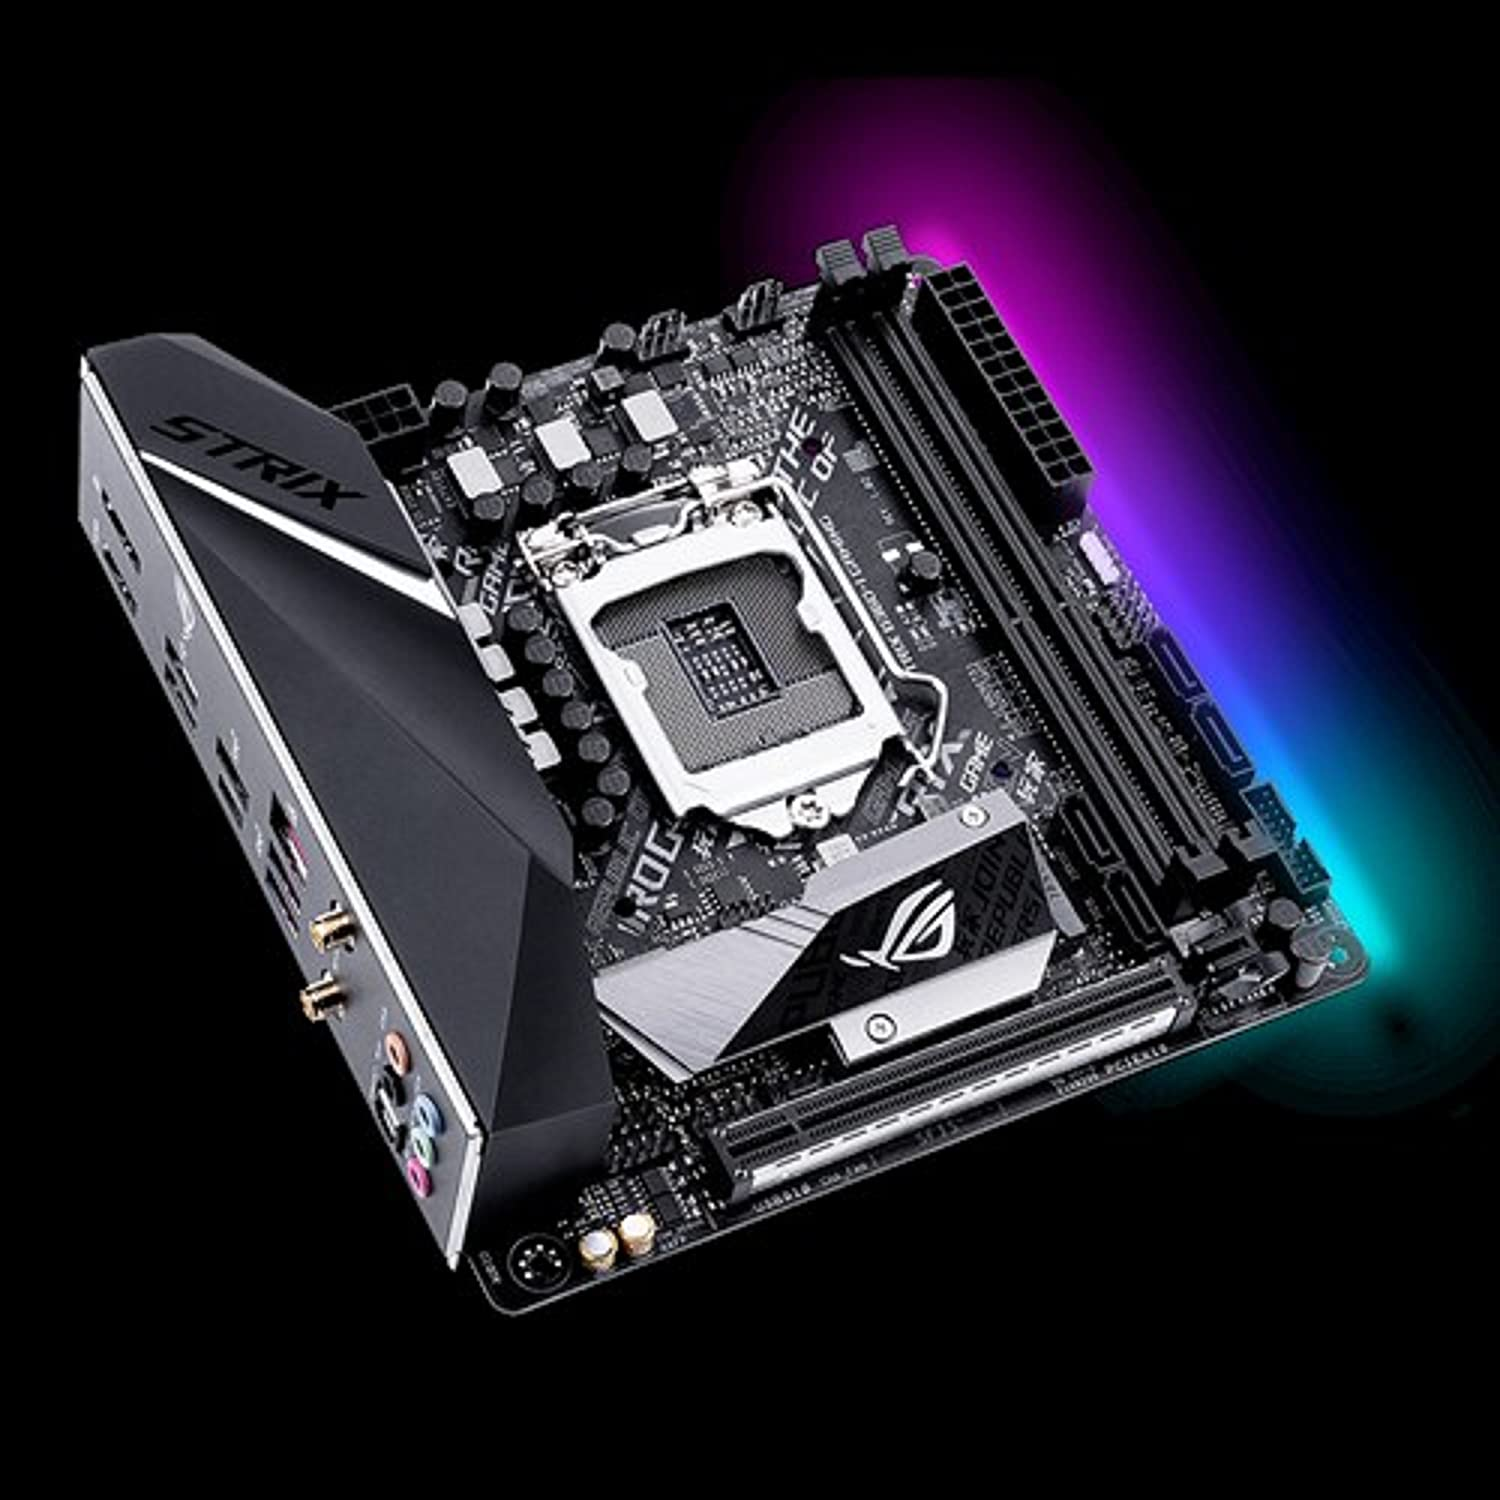 ASUS ROG LGA1151 (300 Series) DDR4 DP HDMI M.2 Mini-ITX Motherboard (Strix B360-I Gaming)